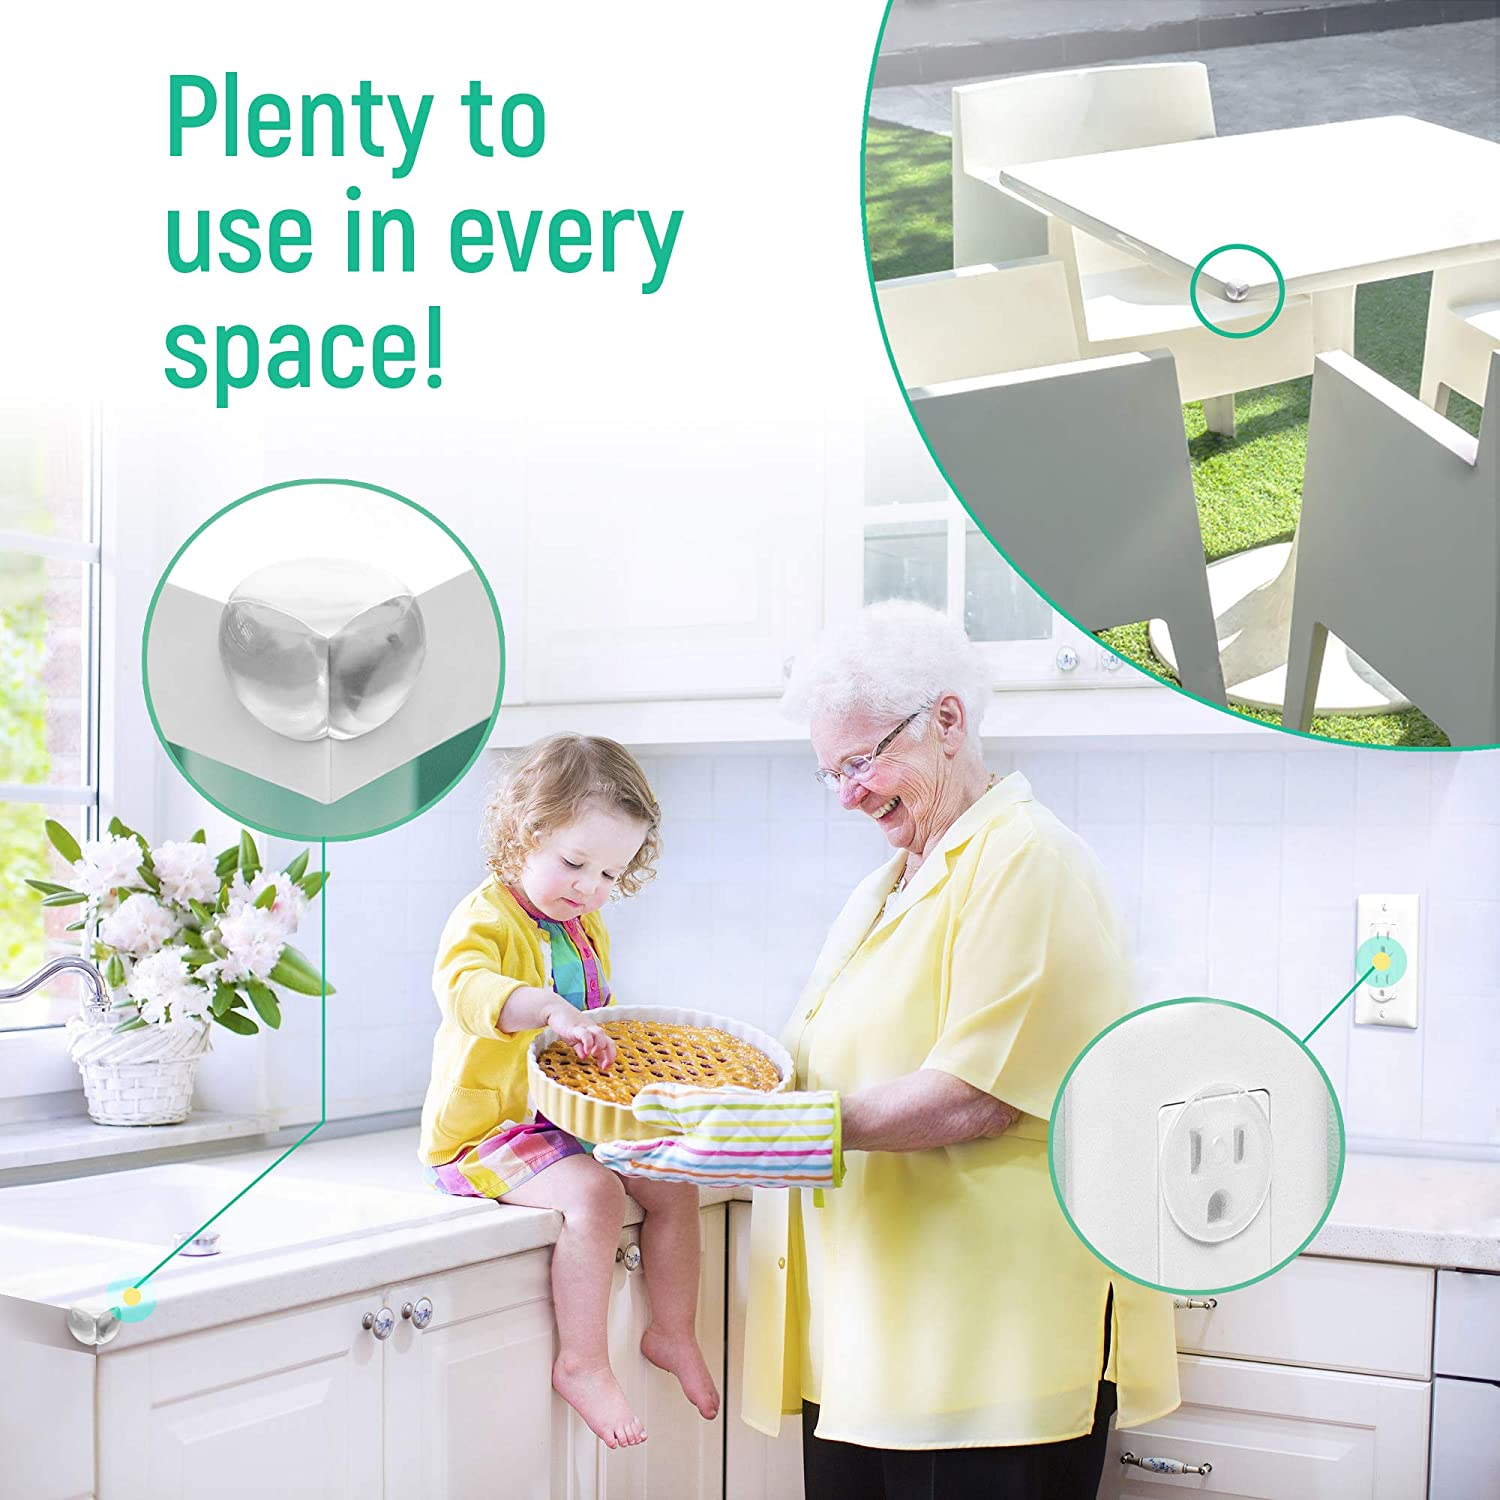 Perfect Baby Shower Gift Super Easy Installation 20 Clear Corner Protectors and 20 Clear Outlet Covers No Tools Needed Strong Pre-Applied Adhesive 2-in-1 Baby Proofing Kit for Child Safety